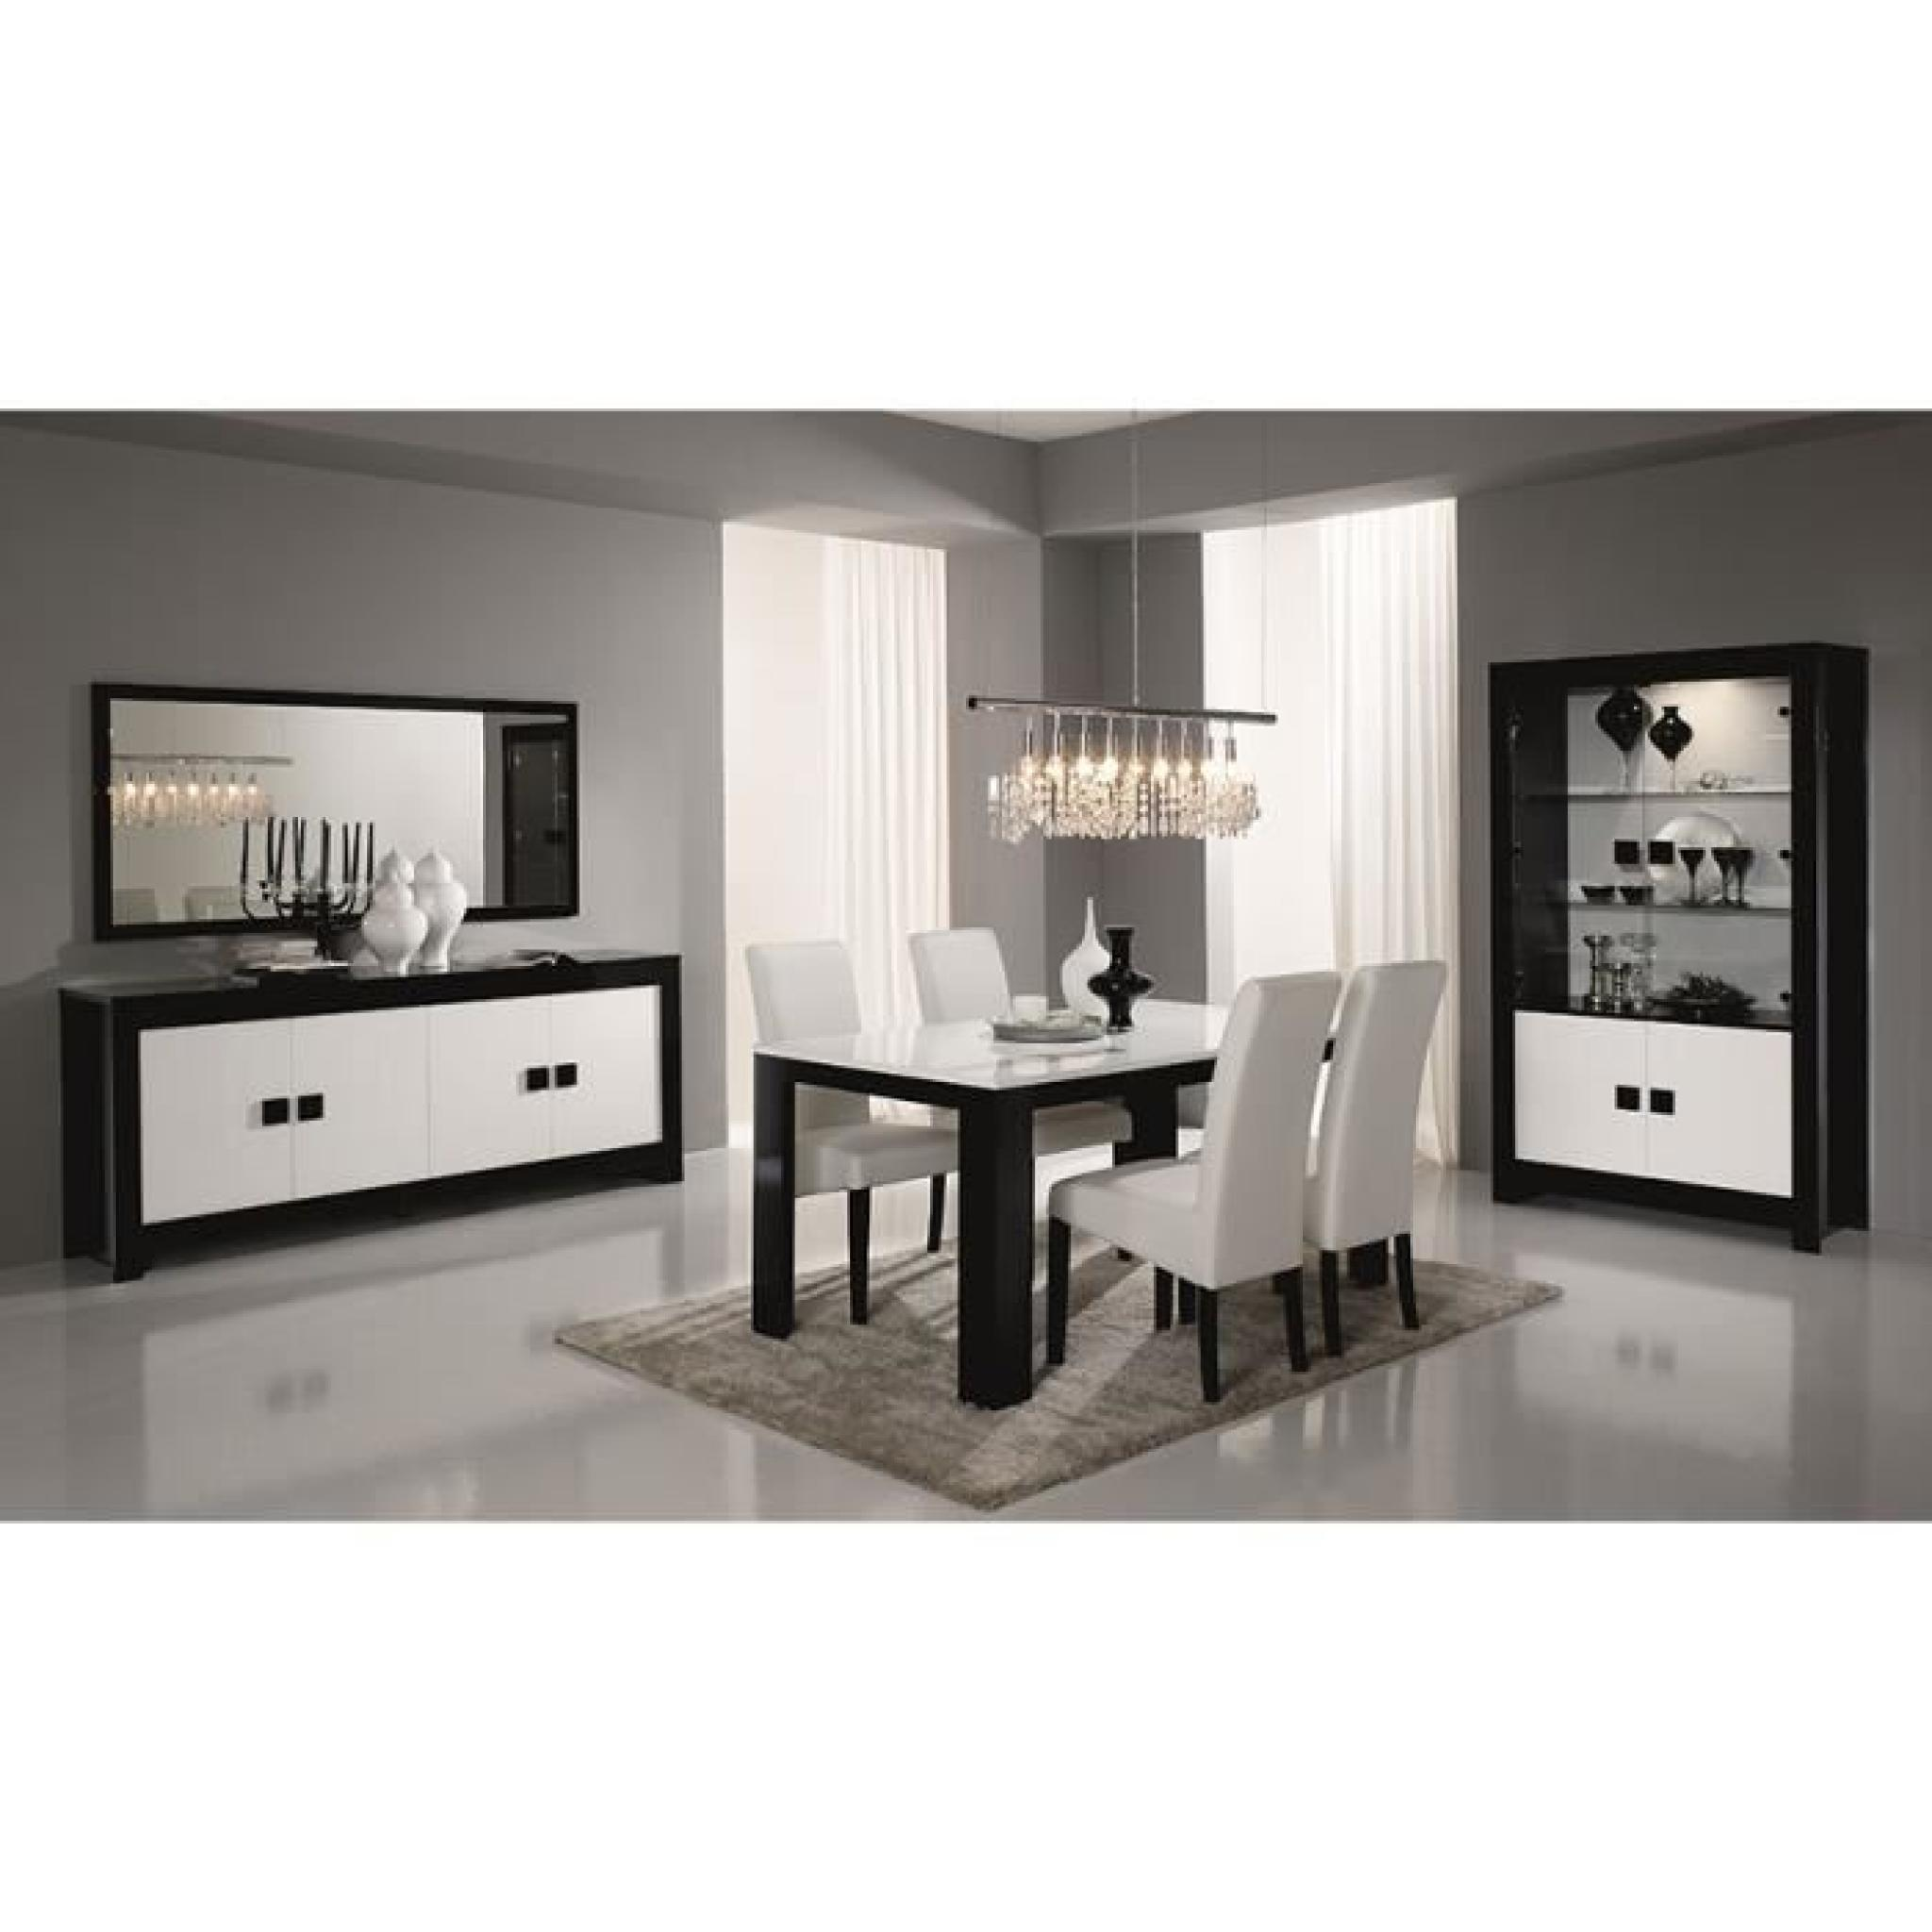 salle manger compl te noir et blanc laqu design bianka 2 table buffet l 160 cm achat. Black Bedroom Furniture Sets. Home Design Ideas